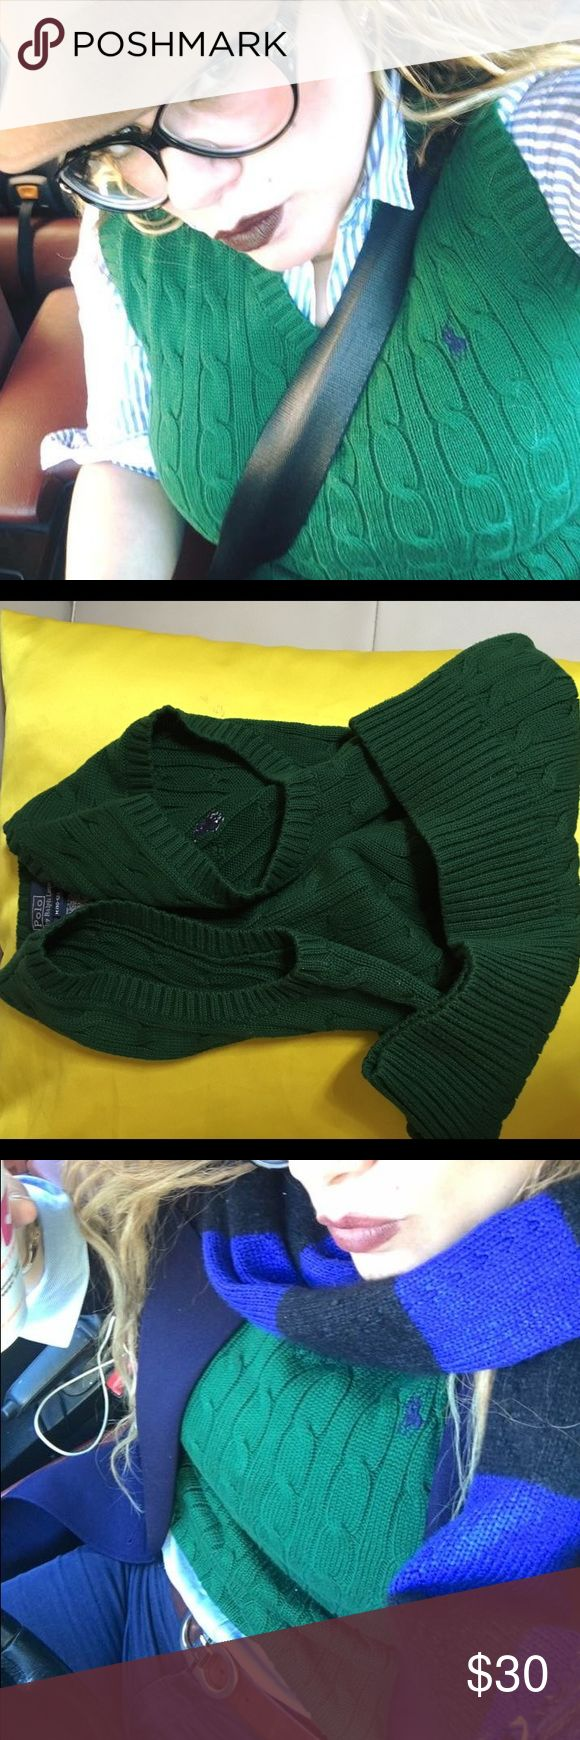 Ralp Lauren sweater vests Ralp Lauren Sweater vest. Perfect condition like new. Is 10/12. Like small woman Ralph Lauren Tops